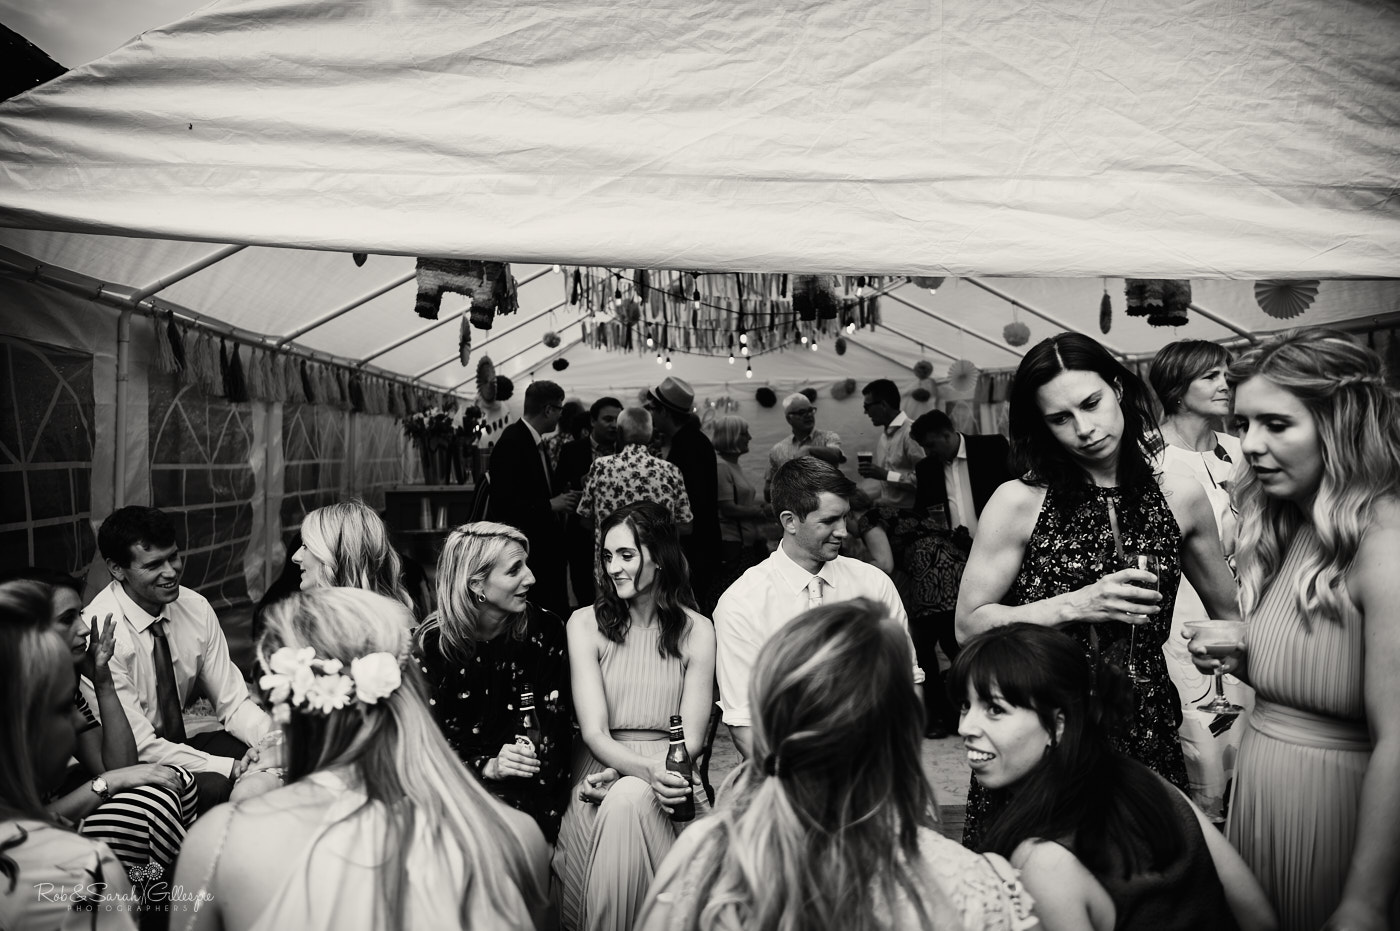 Wedding at Belbroughton village hall in Worcestershire